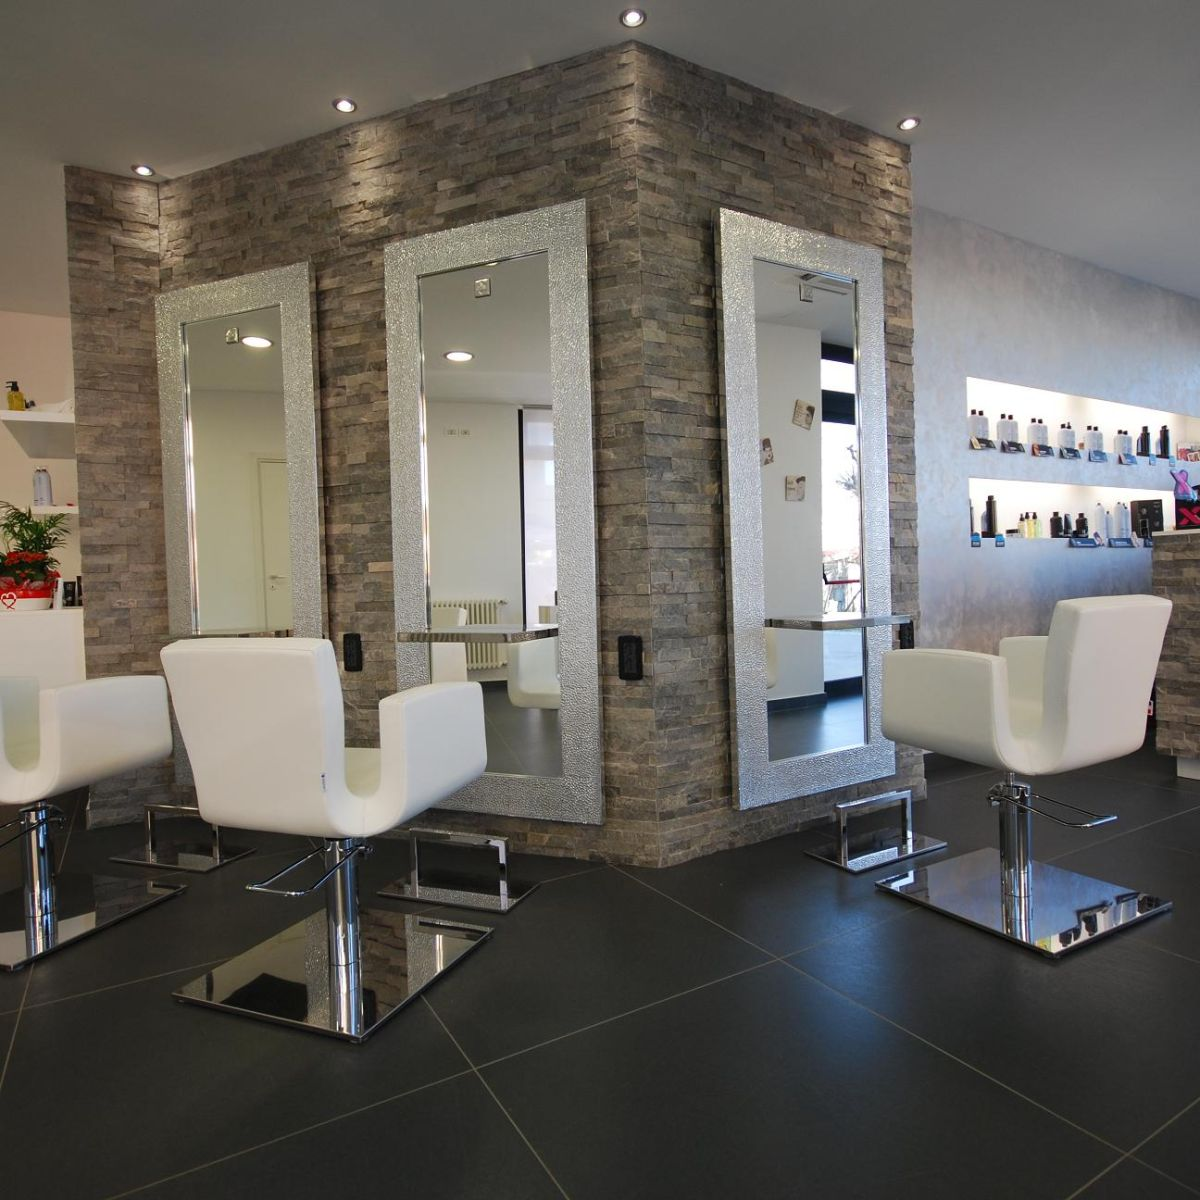 Nelson mobilier hair salon furniture made in france for Hair salon interior design photo